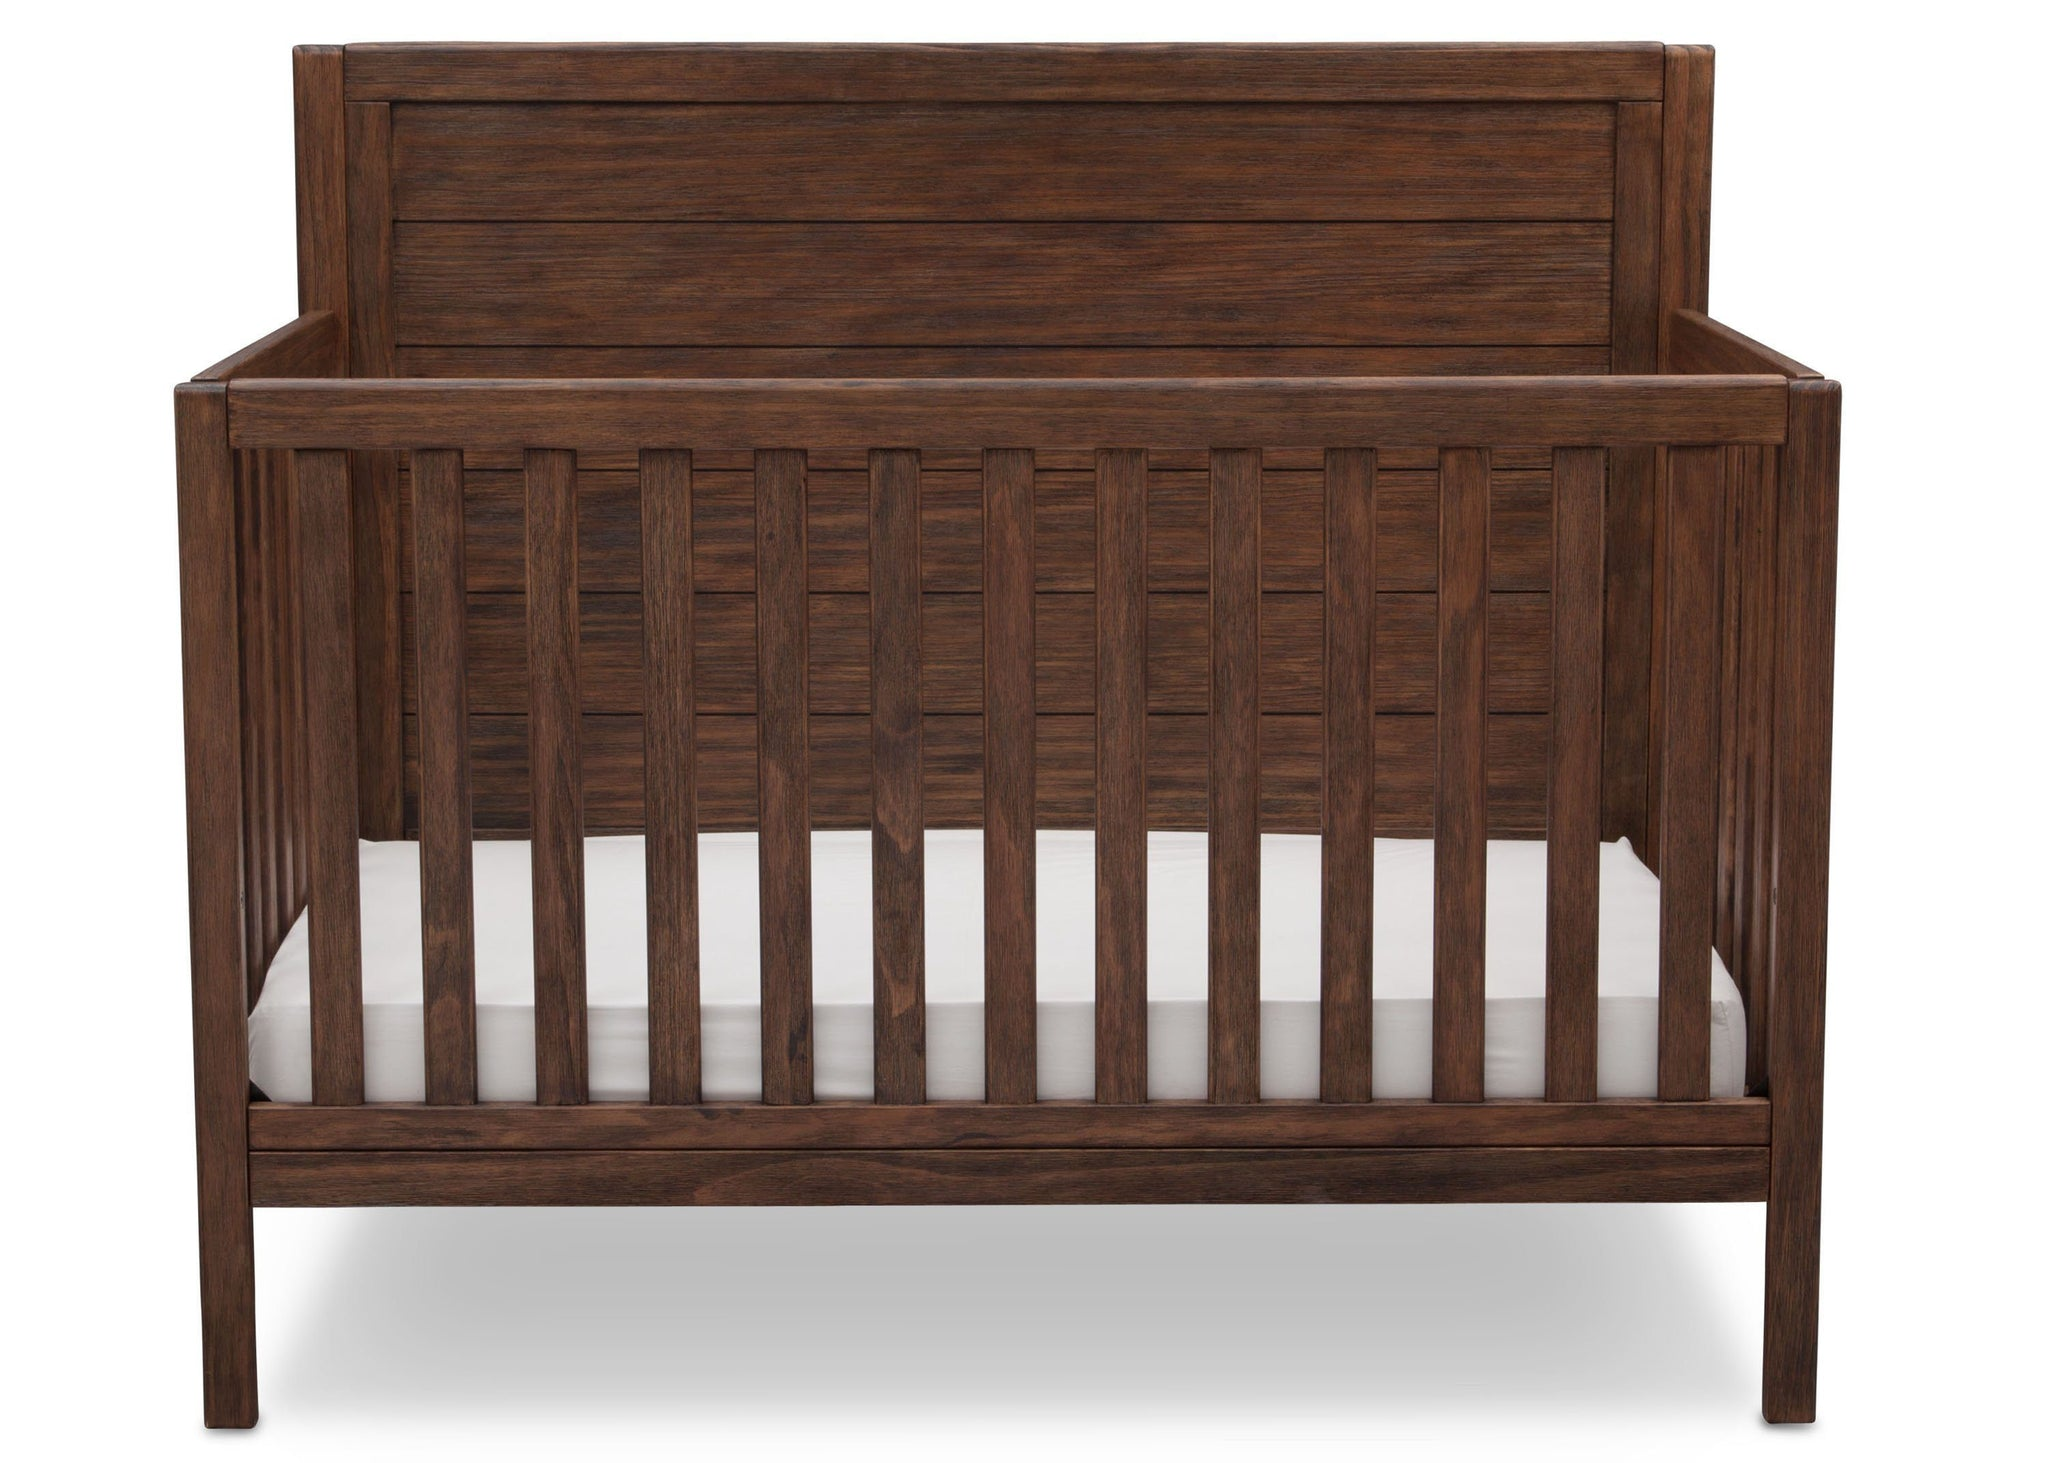 Serta Rustic Oak (229) Cambridge 4-in-1 Convertibel Crib, Front View c2c